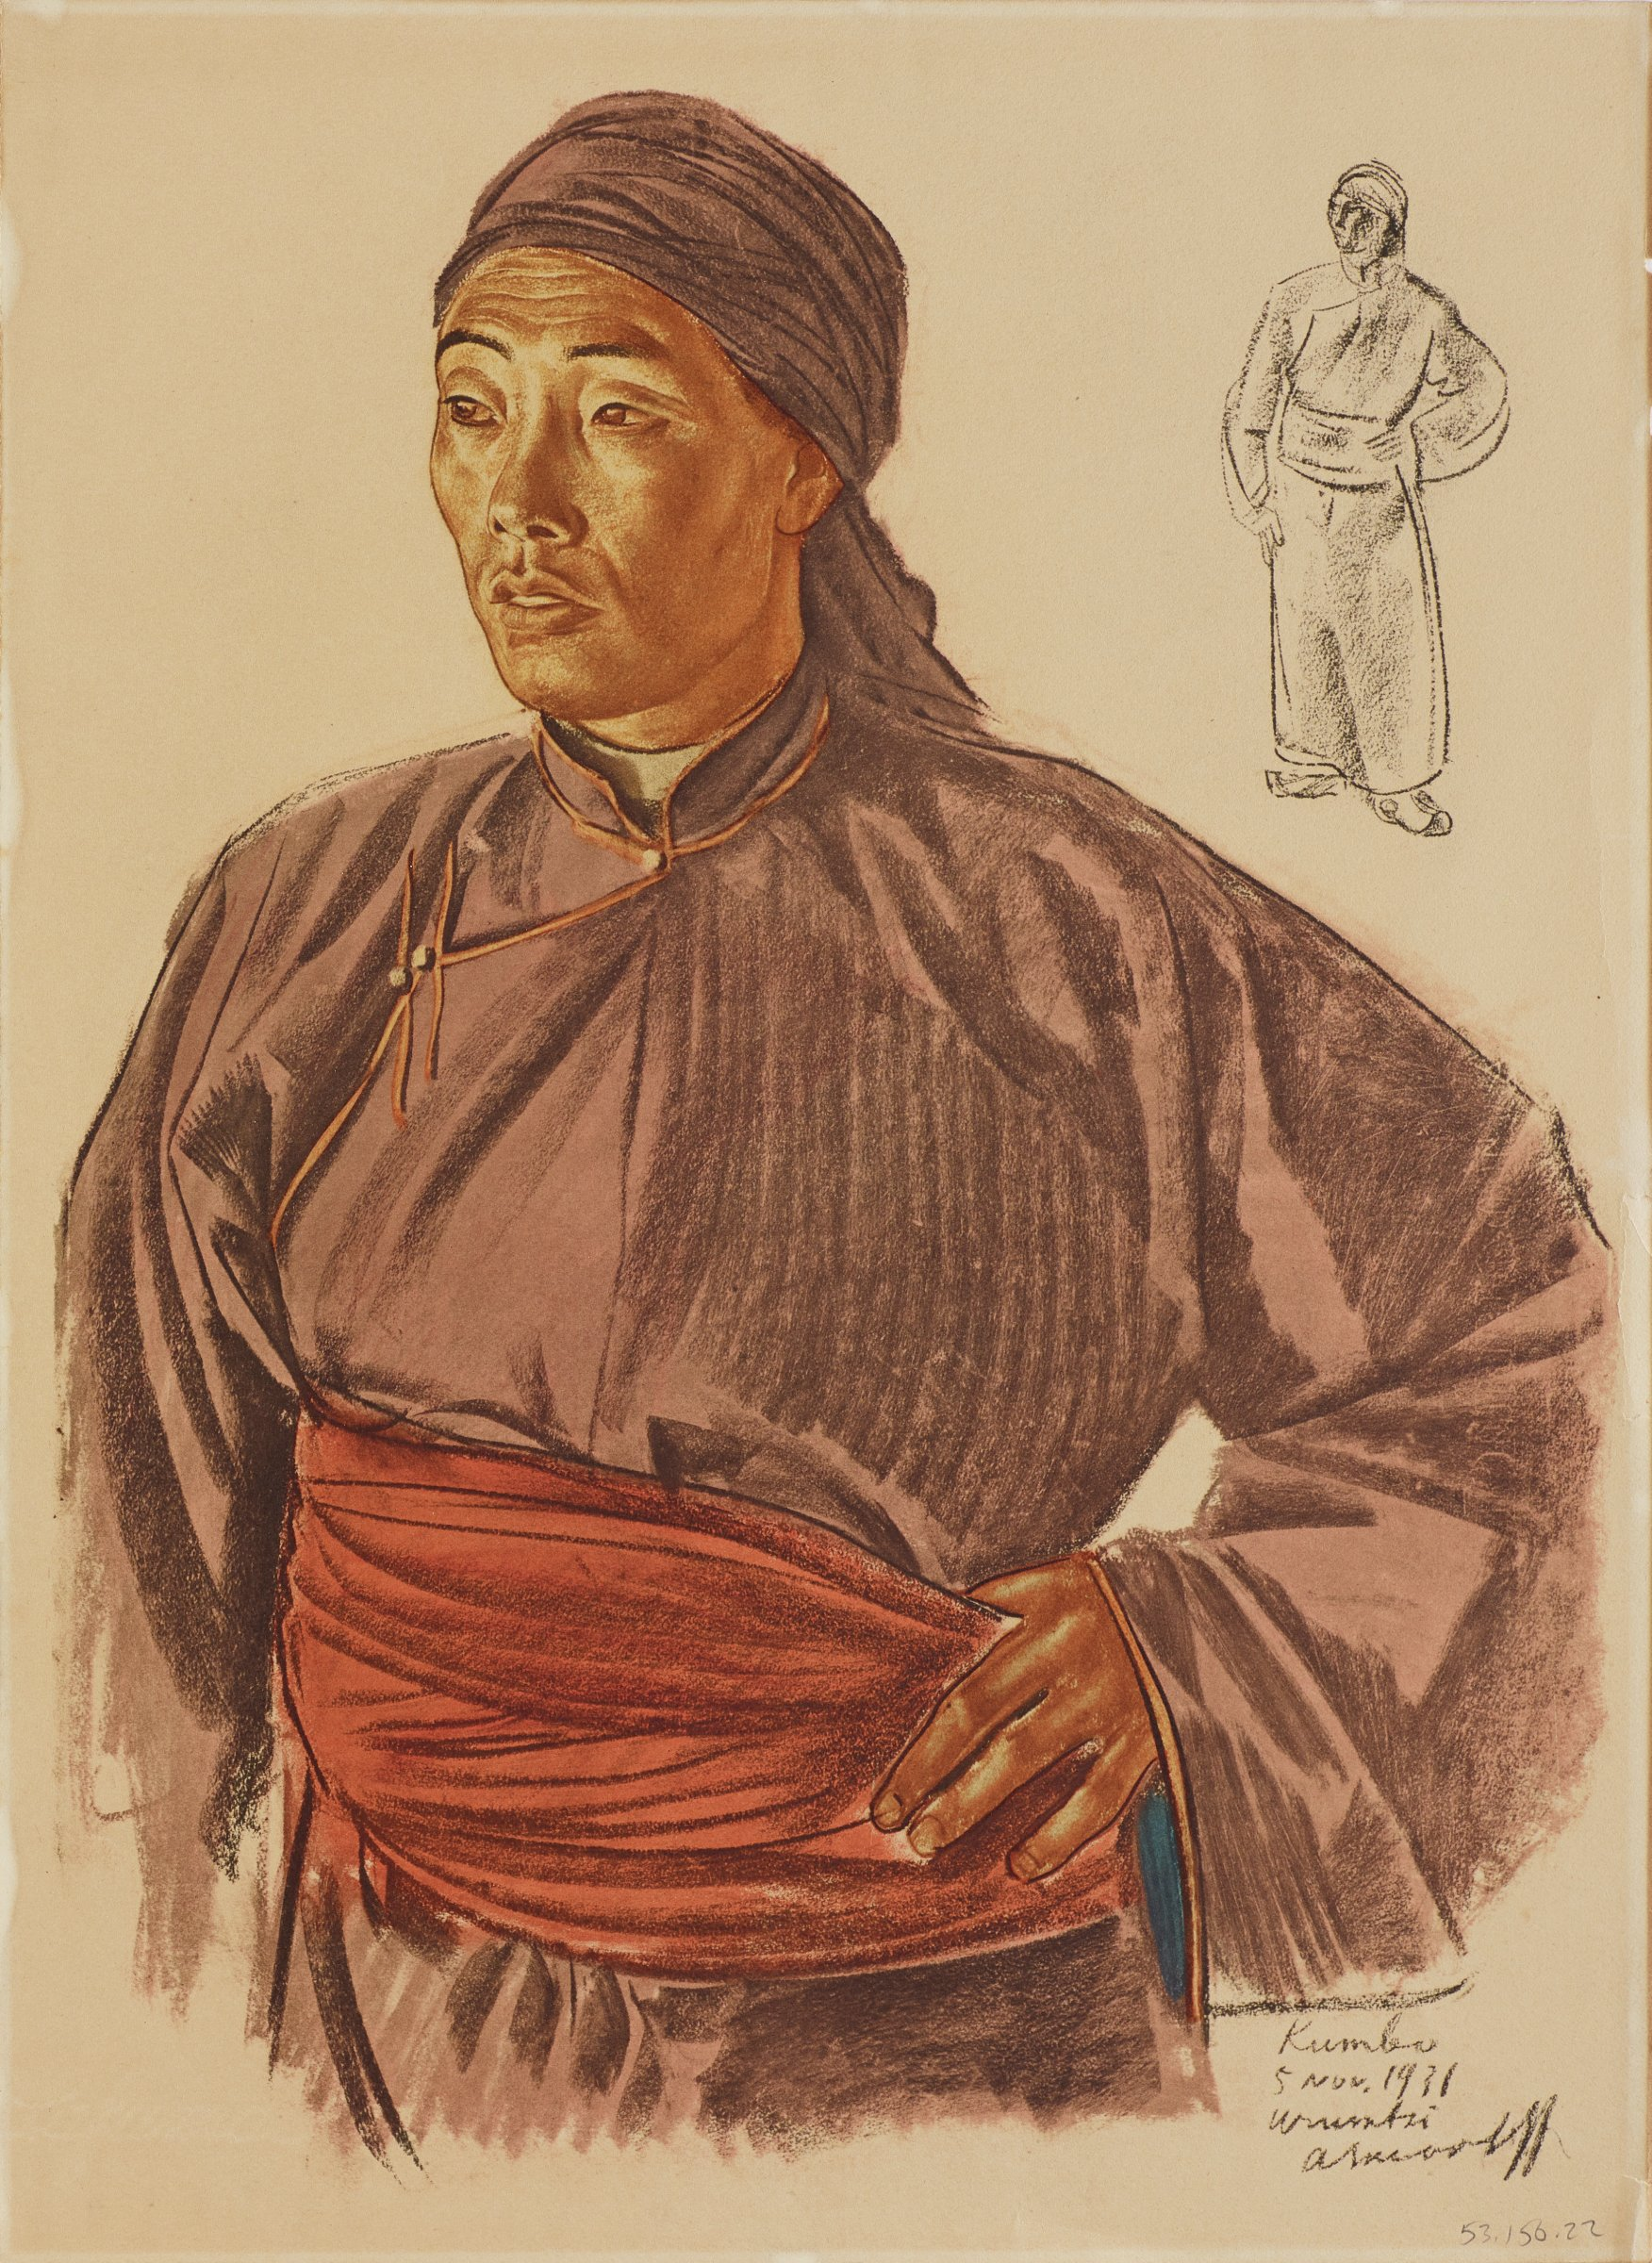 Half-length portrait of a male figure in a purle head scarf and a purple robe with a red sash. His body is turned toward toward the viewer as he faces slightly left. In the upper right, a figure is seen in outline. This series is a product of Jacovleff's involvement in the Expédition Citroën Centre-Asie.